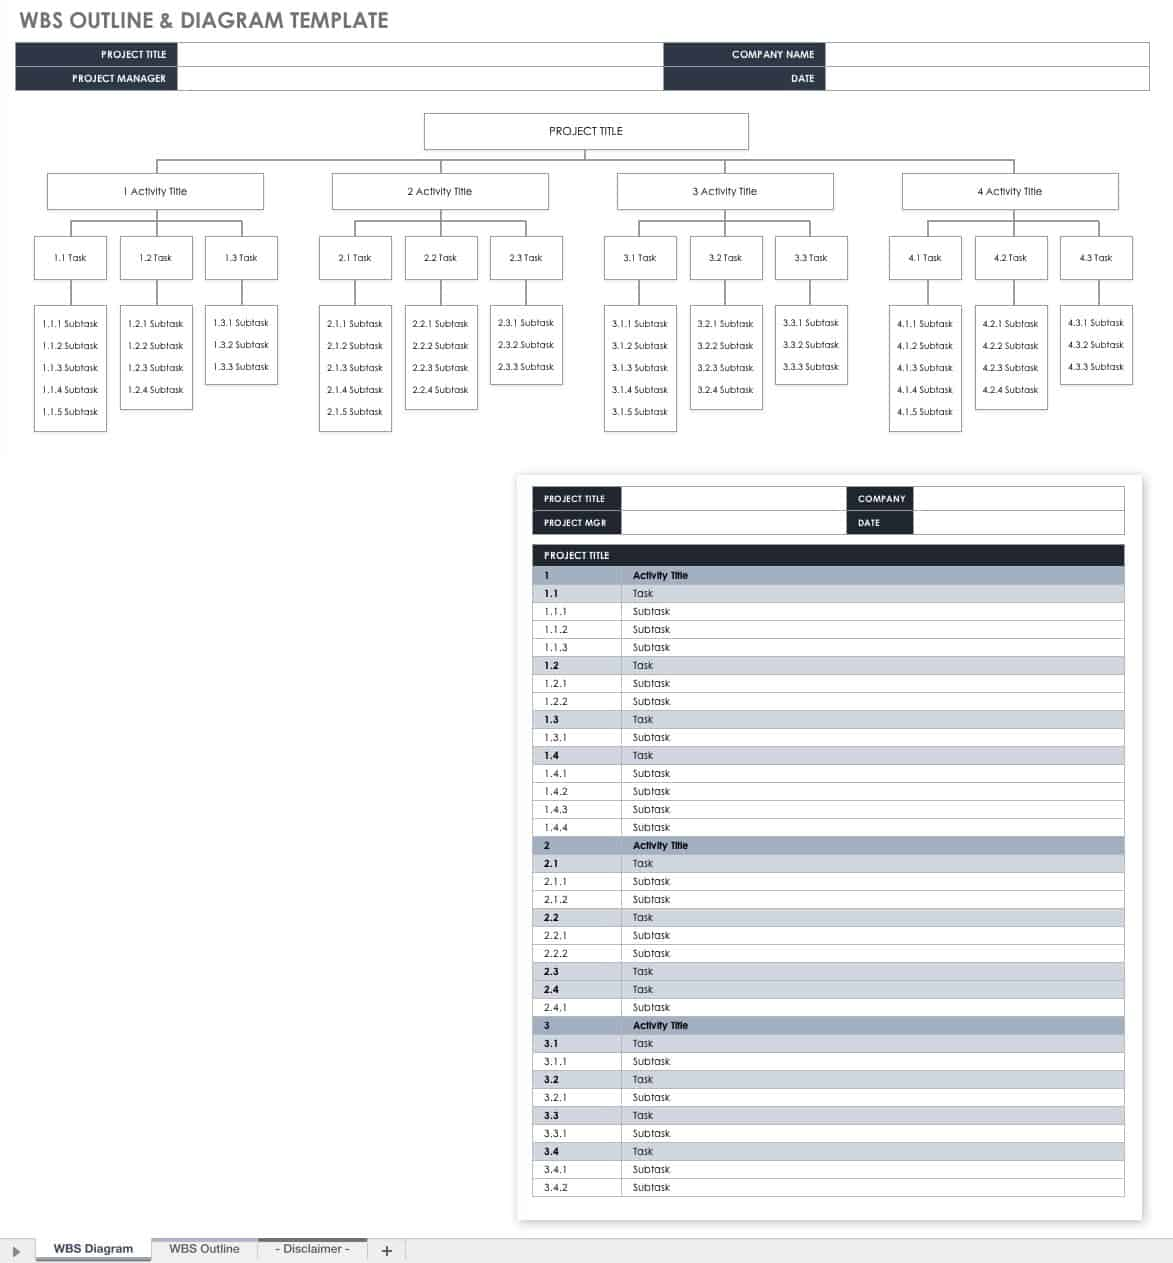 WBS Outline and Diagram Template